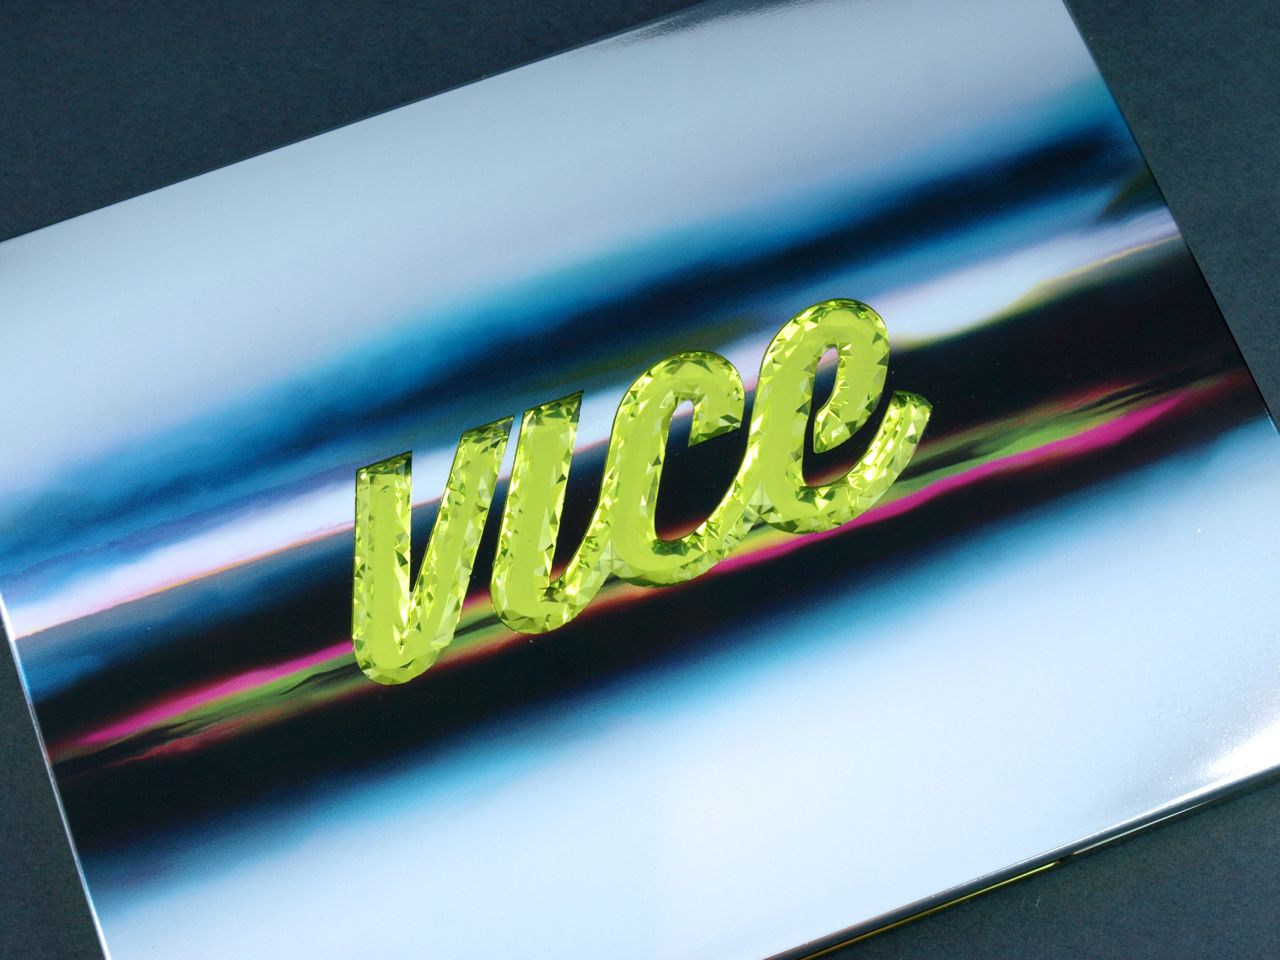 Urban Decay Vice3 Eyeshadow Palette: Review and Swatches